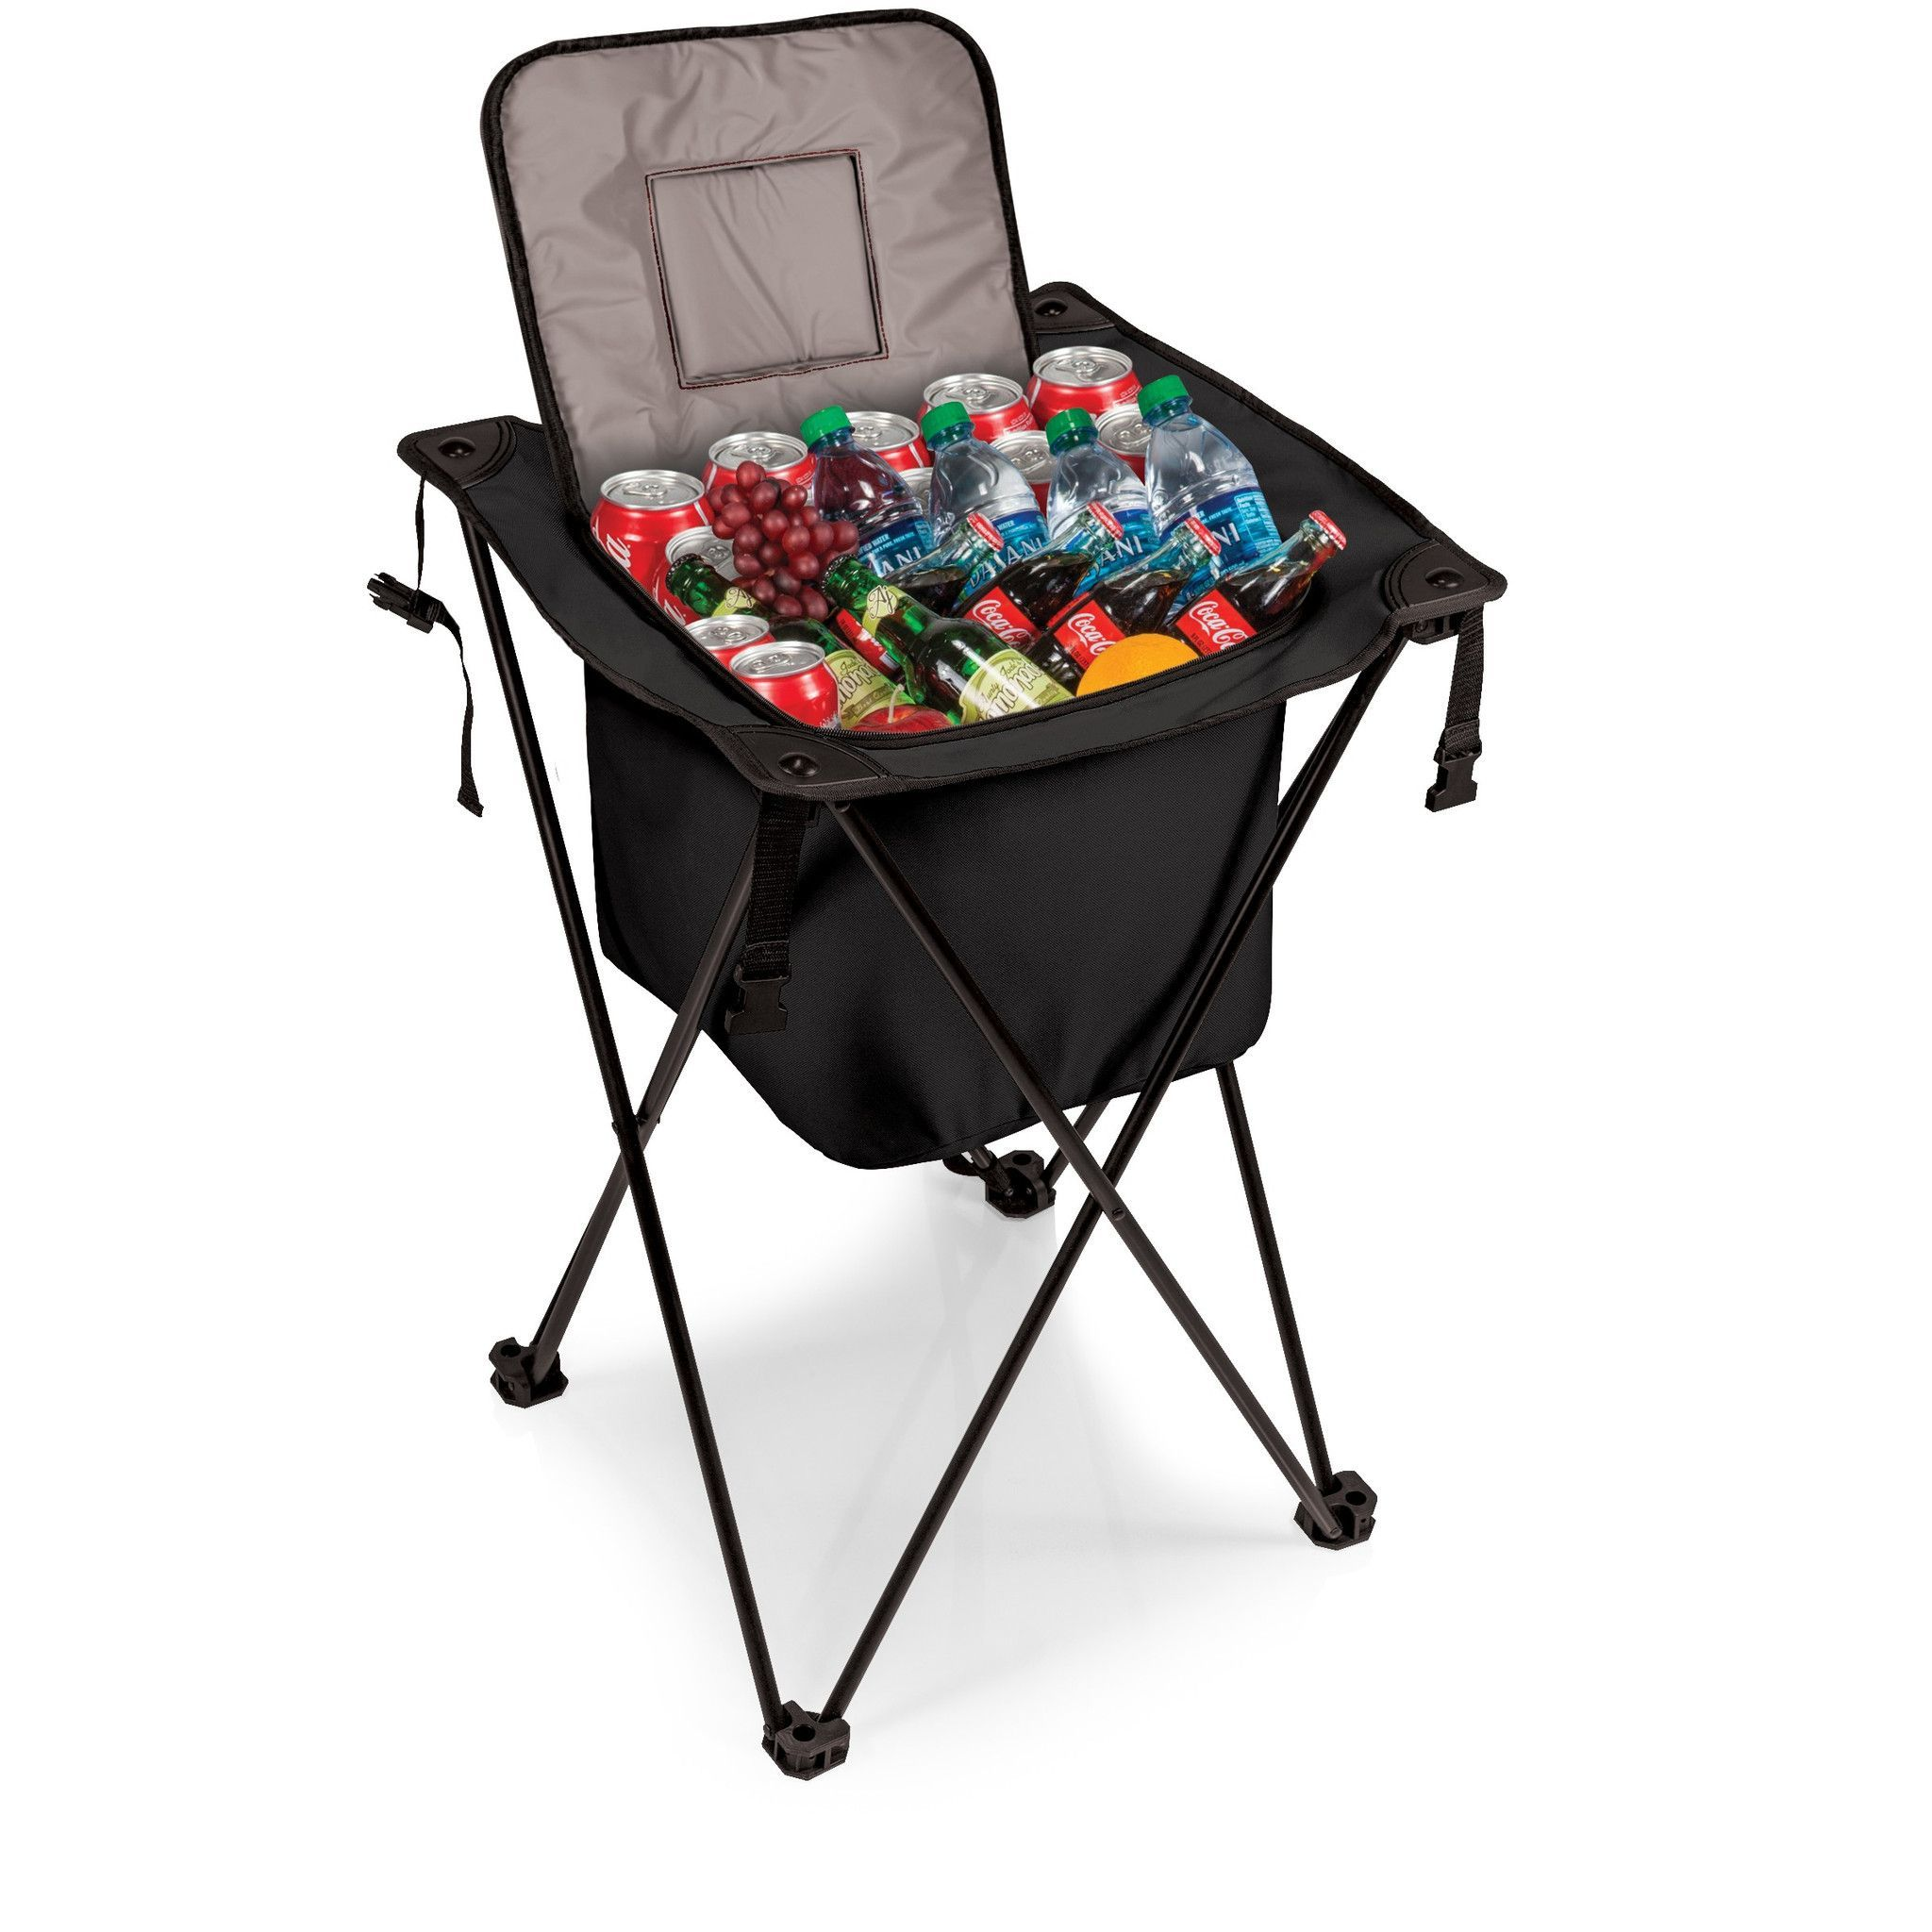 Sidekick Portable Cooler with Stand (With images) Picnic